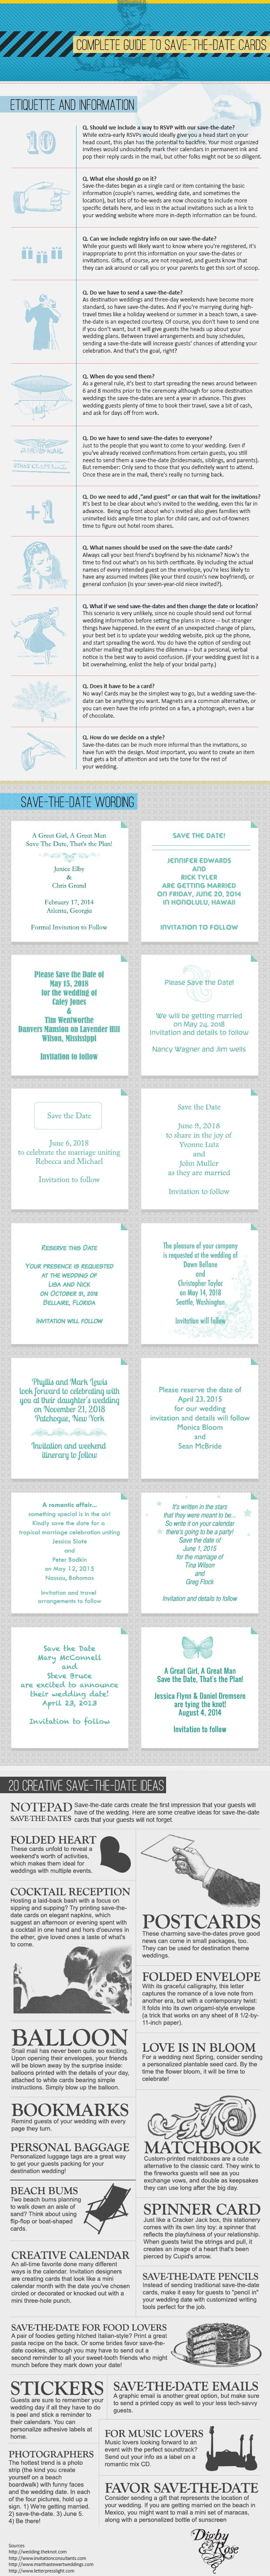 Guide to #Save-The-Date Cards #Wording